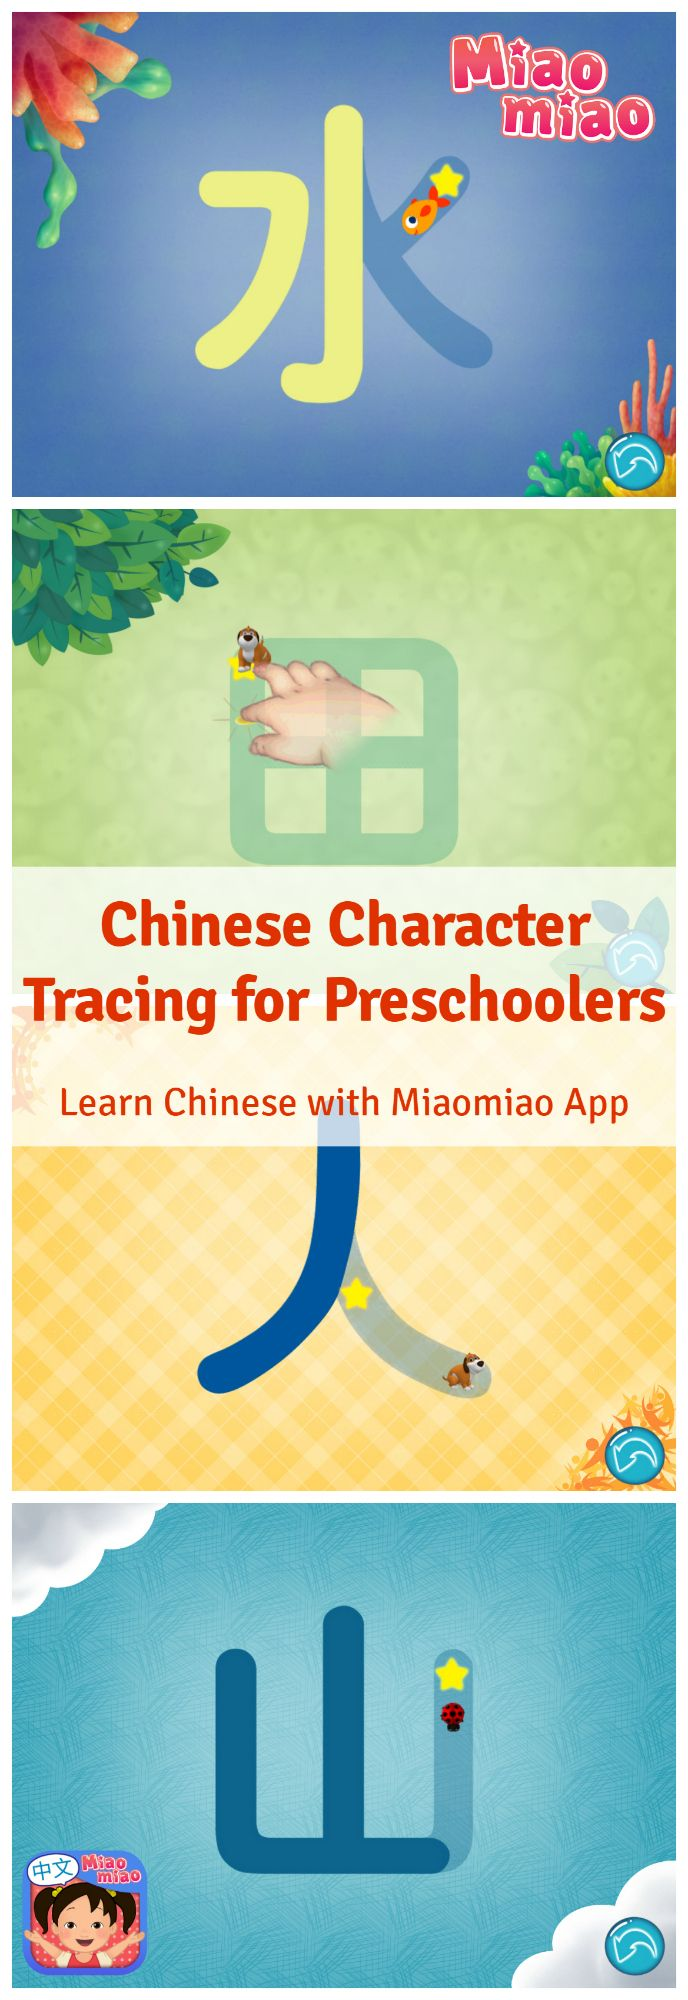 Apps For Learning Chinese: iPad/iPhone Apps AppGuide